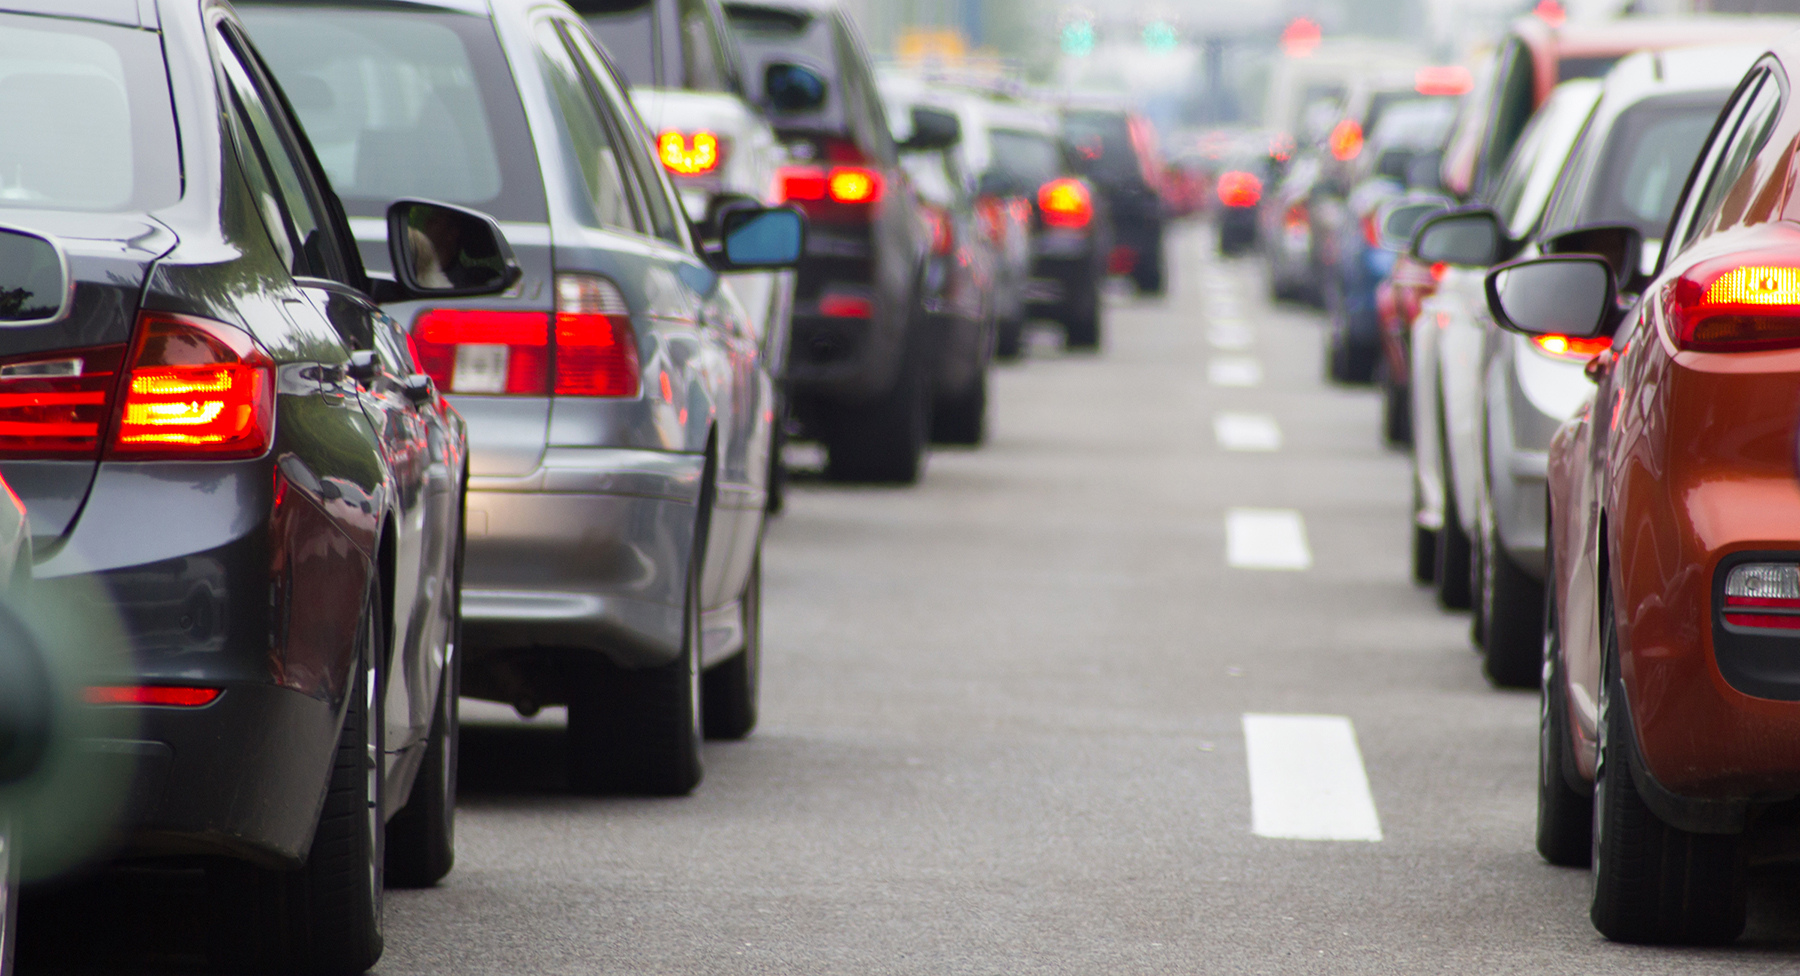 tailback of cars queuing on a motorway